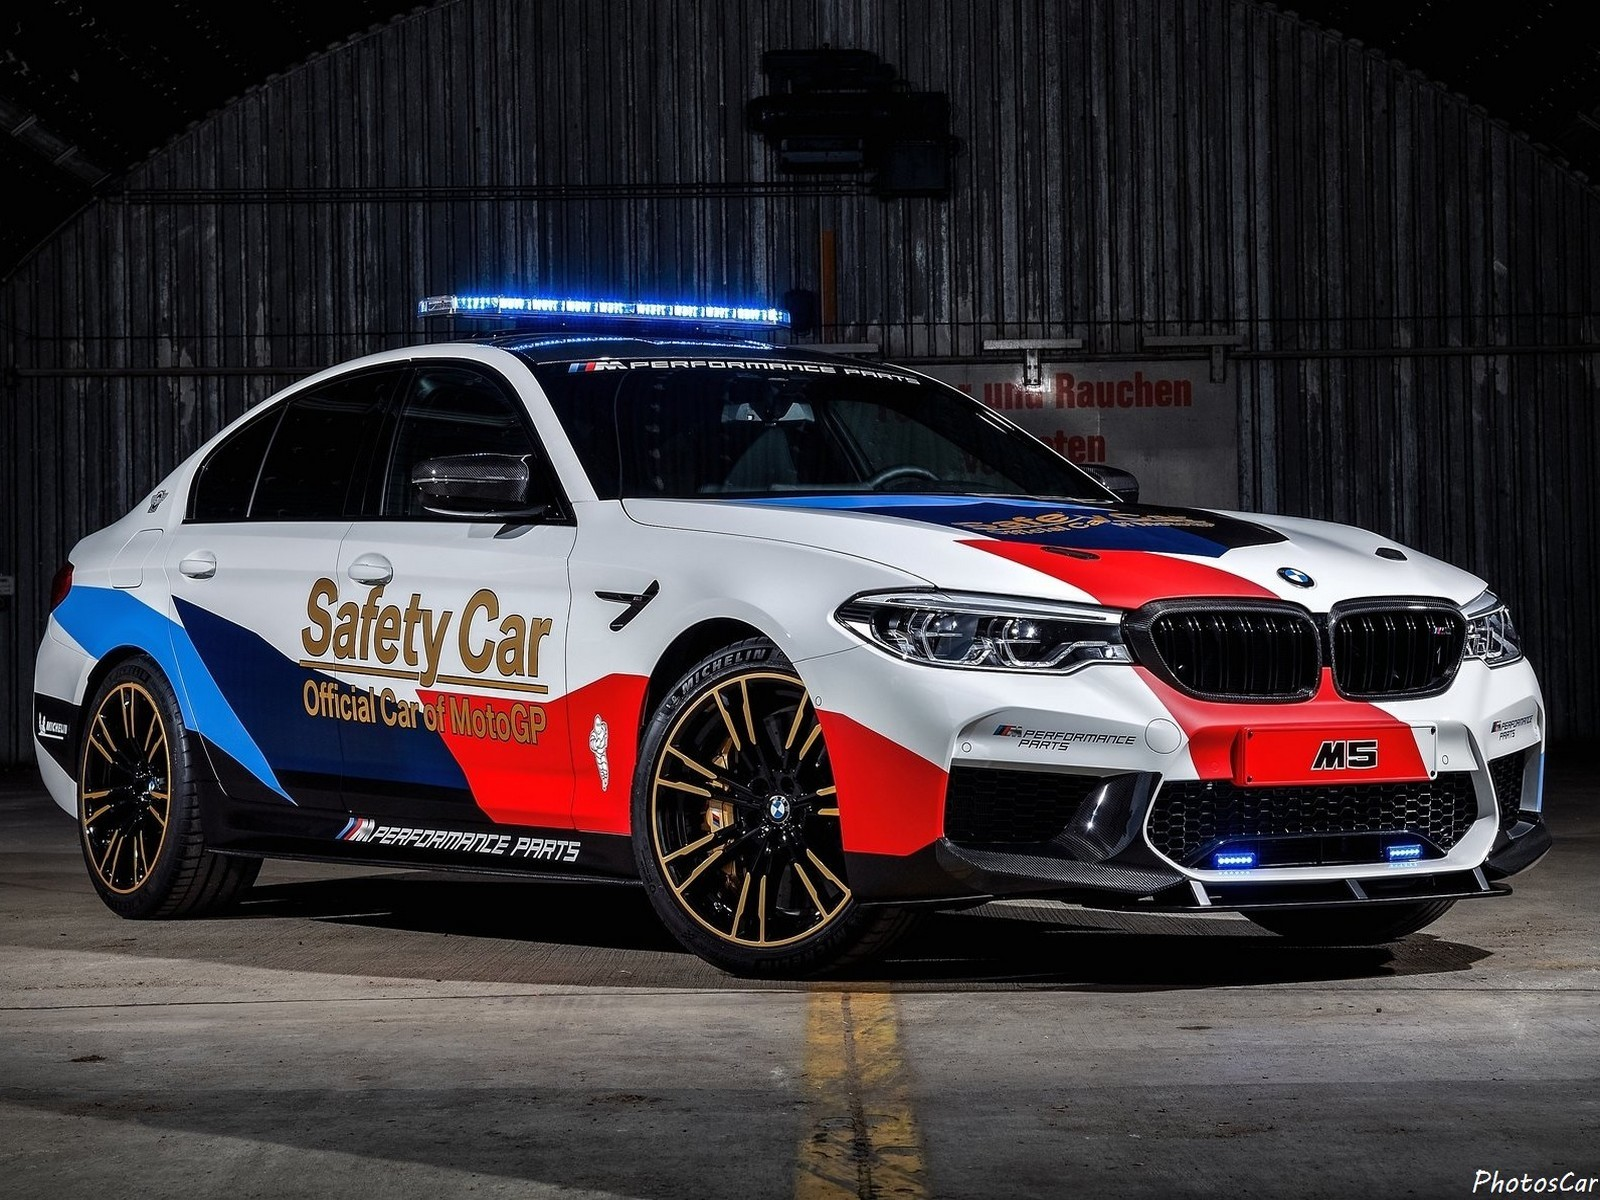 bmw m5 motogp safety car 2018 avec des pi ces m performance. Black Bedroom Furniture Sets. Home Design Ideas